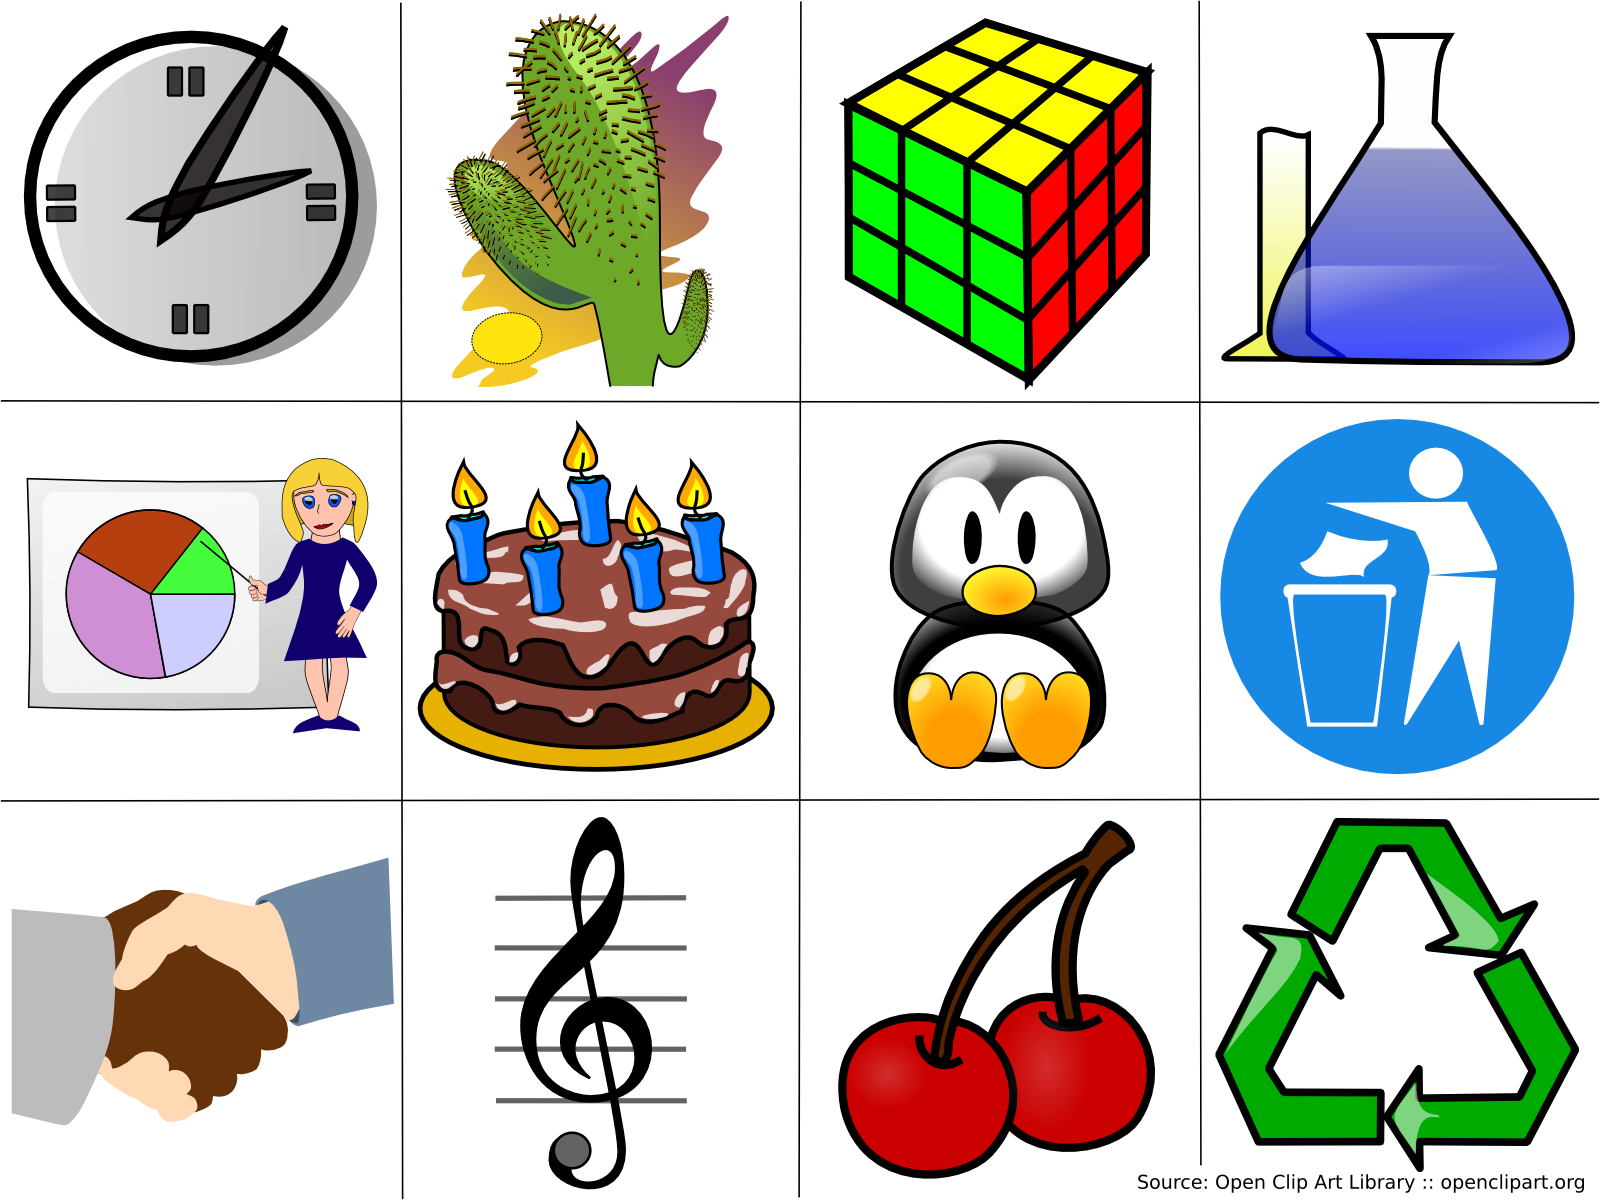 Clipart For Free Enterprise | - 426.3KB